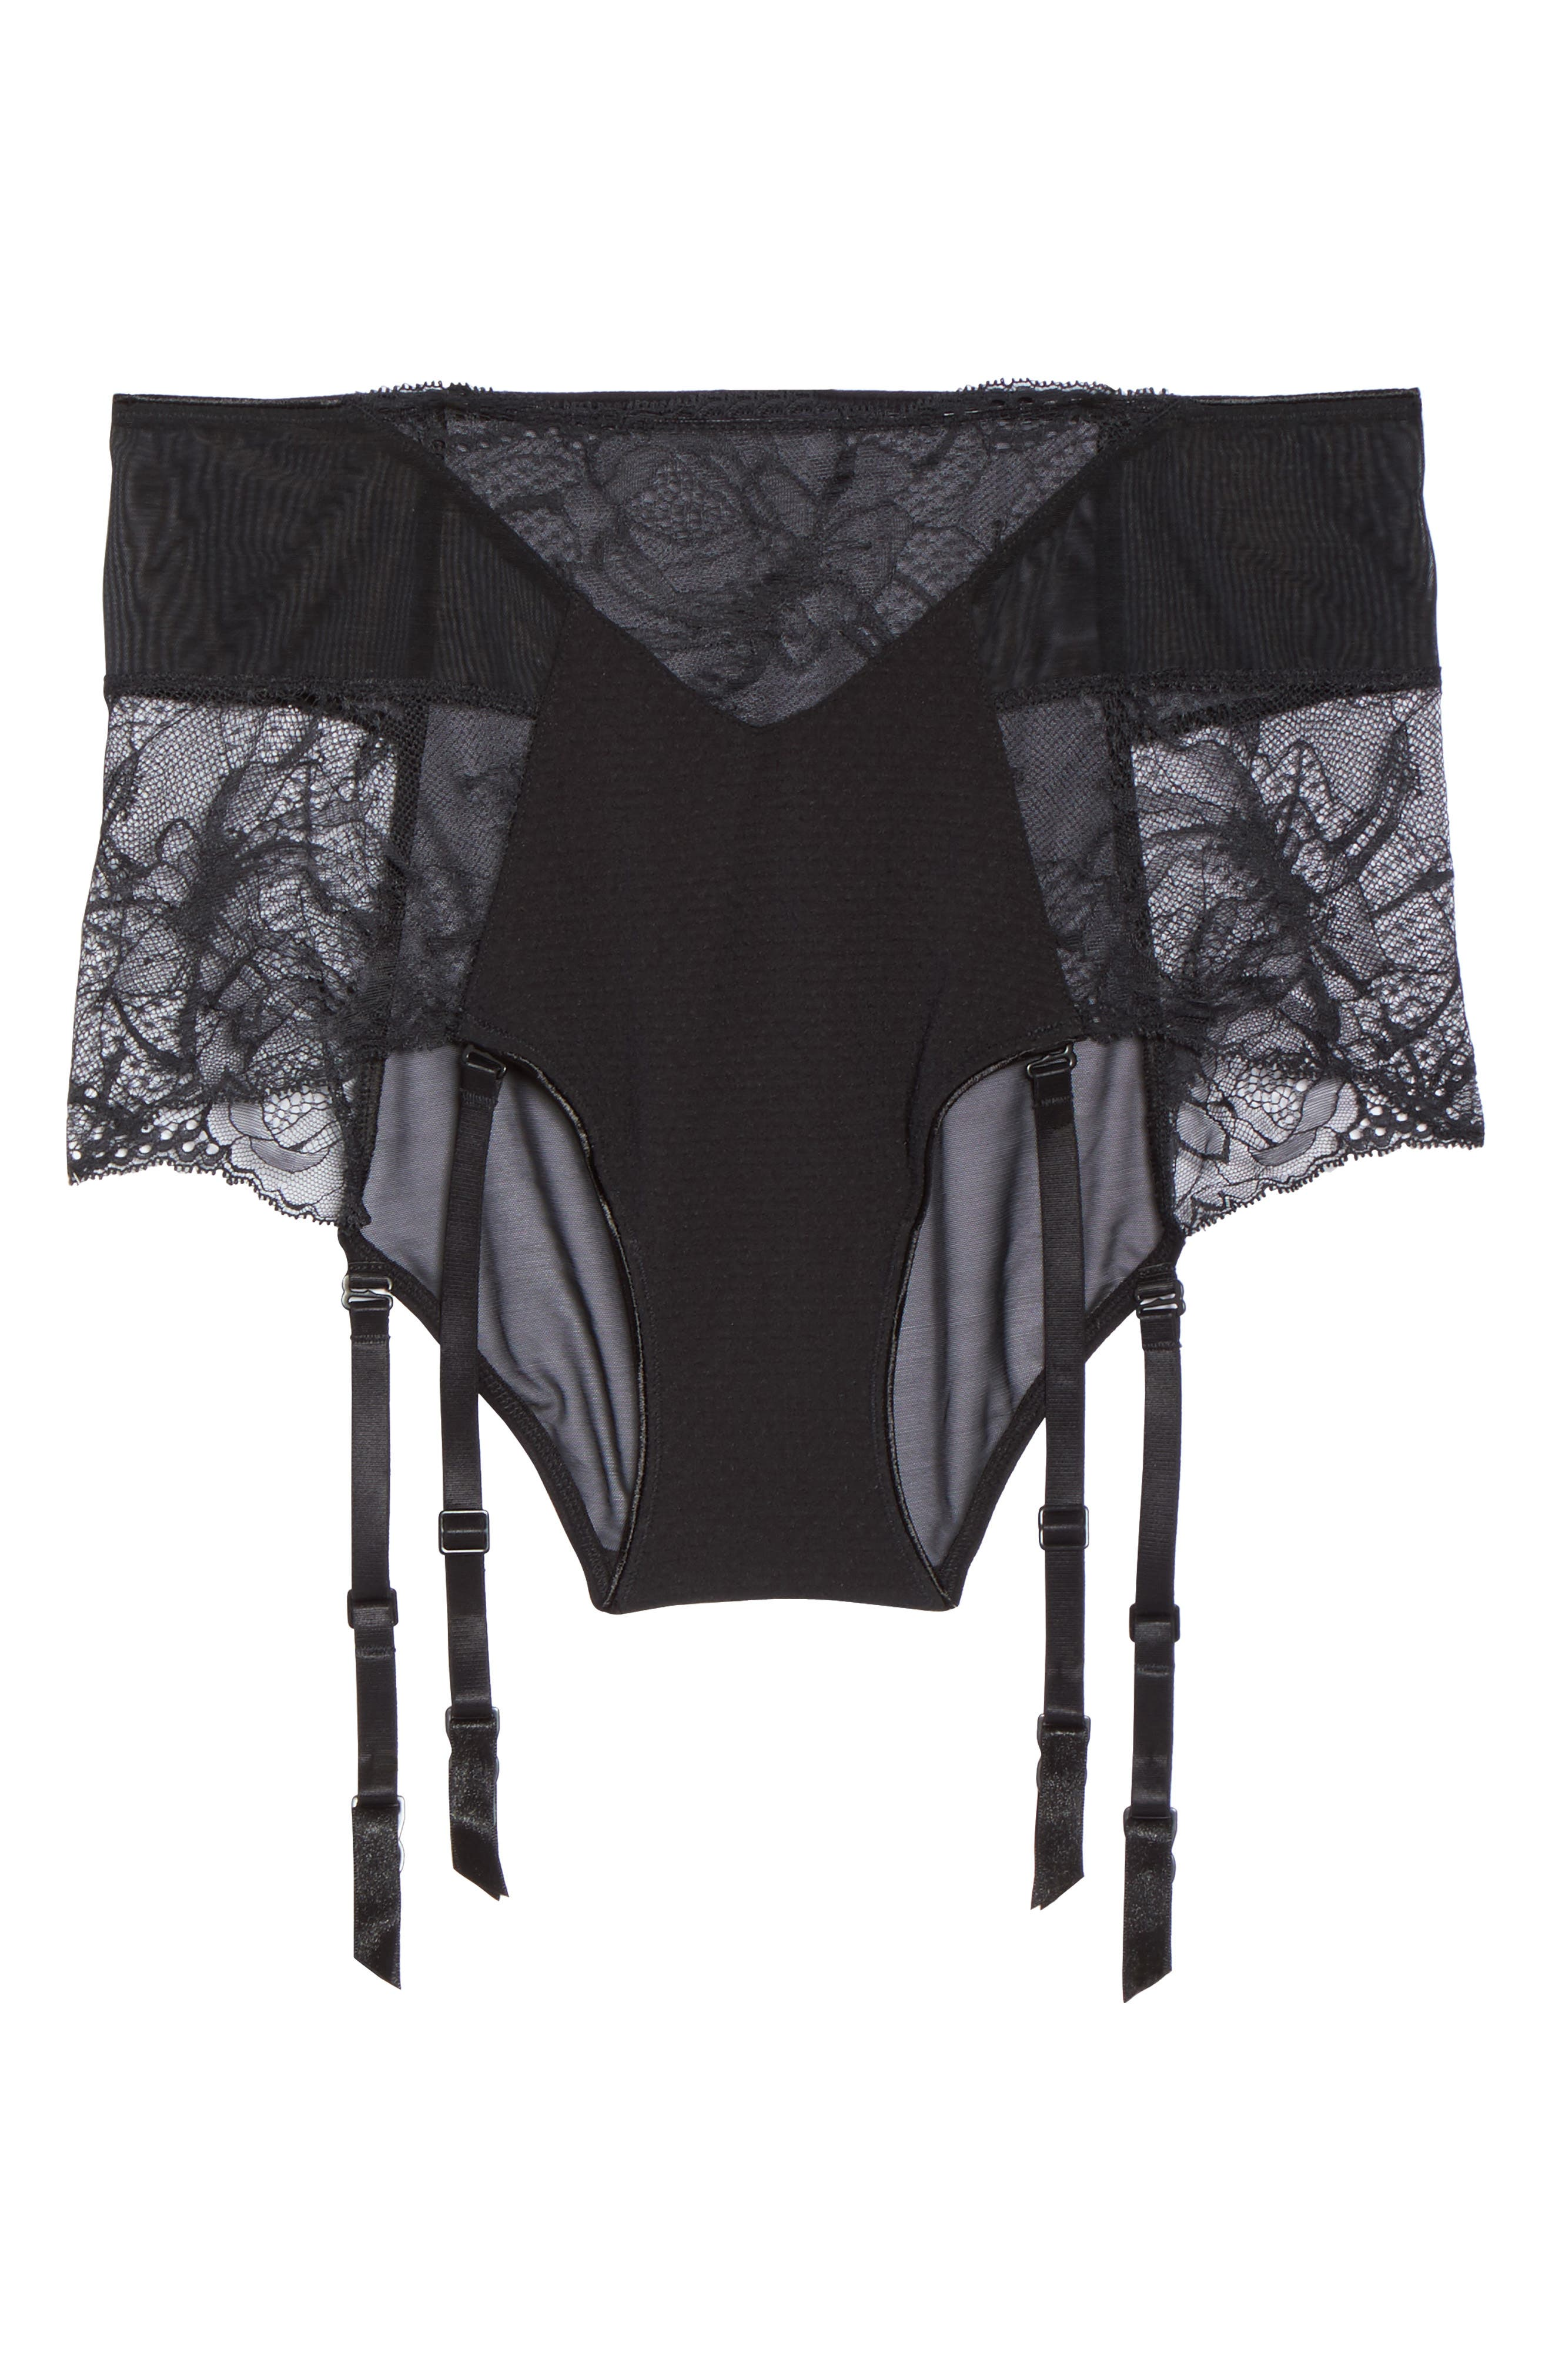 Black Rose Lace High Waist Briefs with Suspenders,                             Alternate thumbnail 7, color,                             001